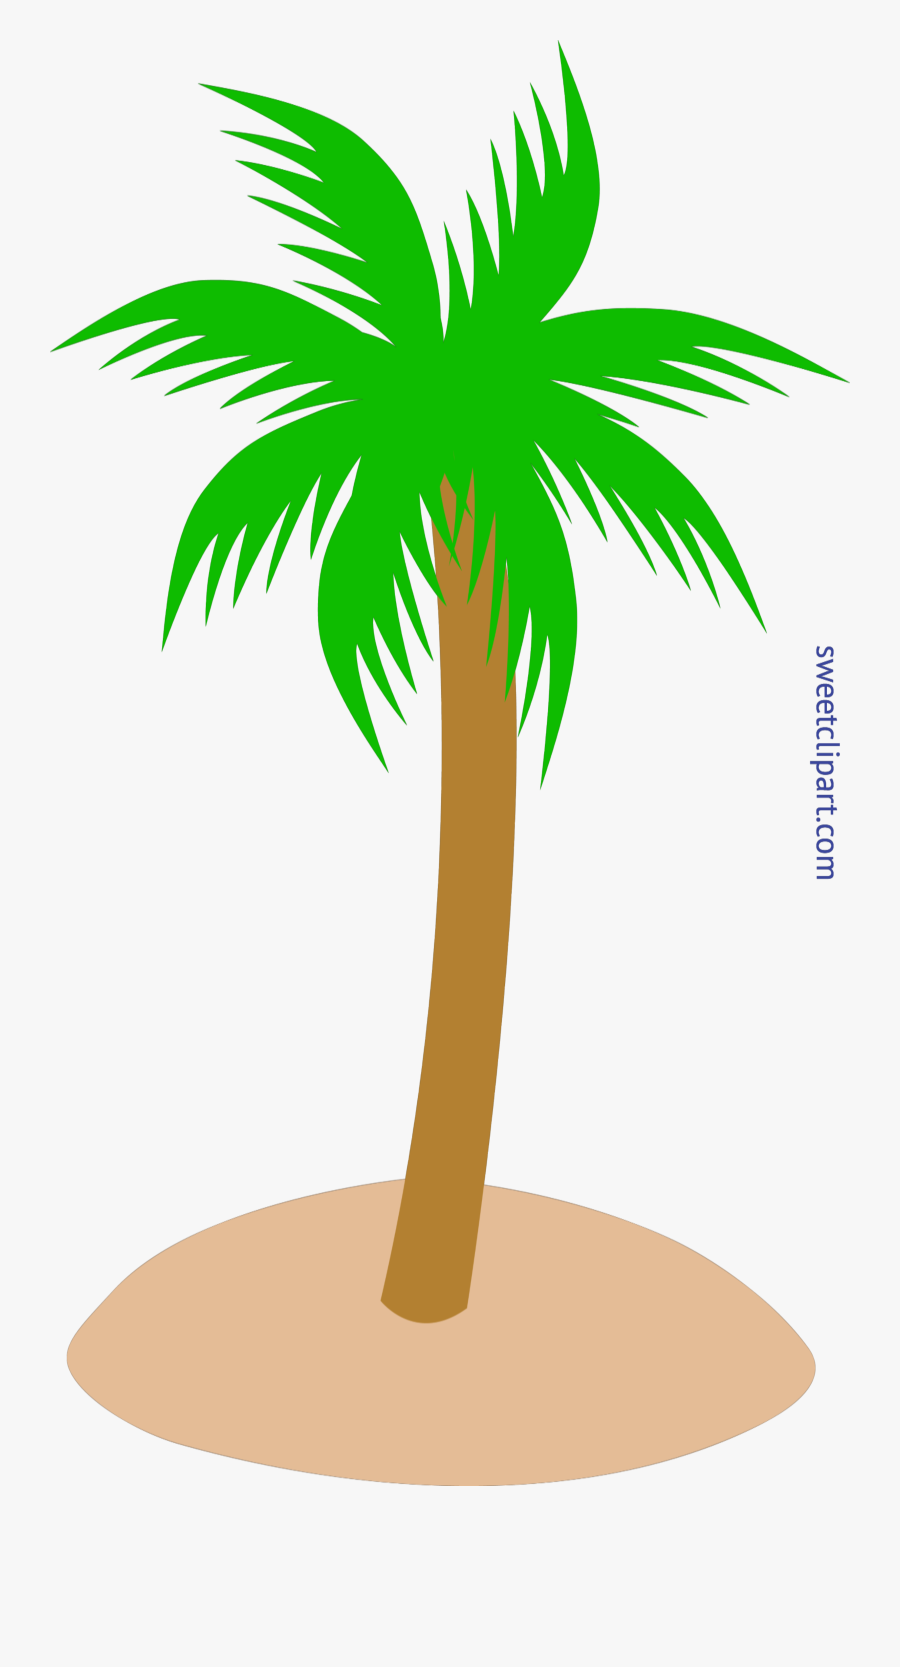 Travel Clipart Tree - Palm Tree Png Vector, Transparent Clipart